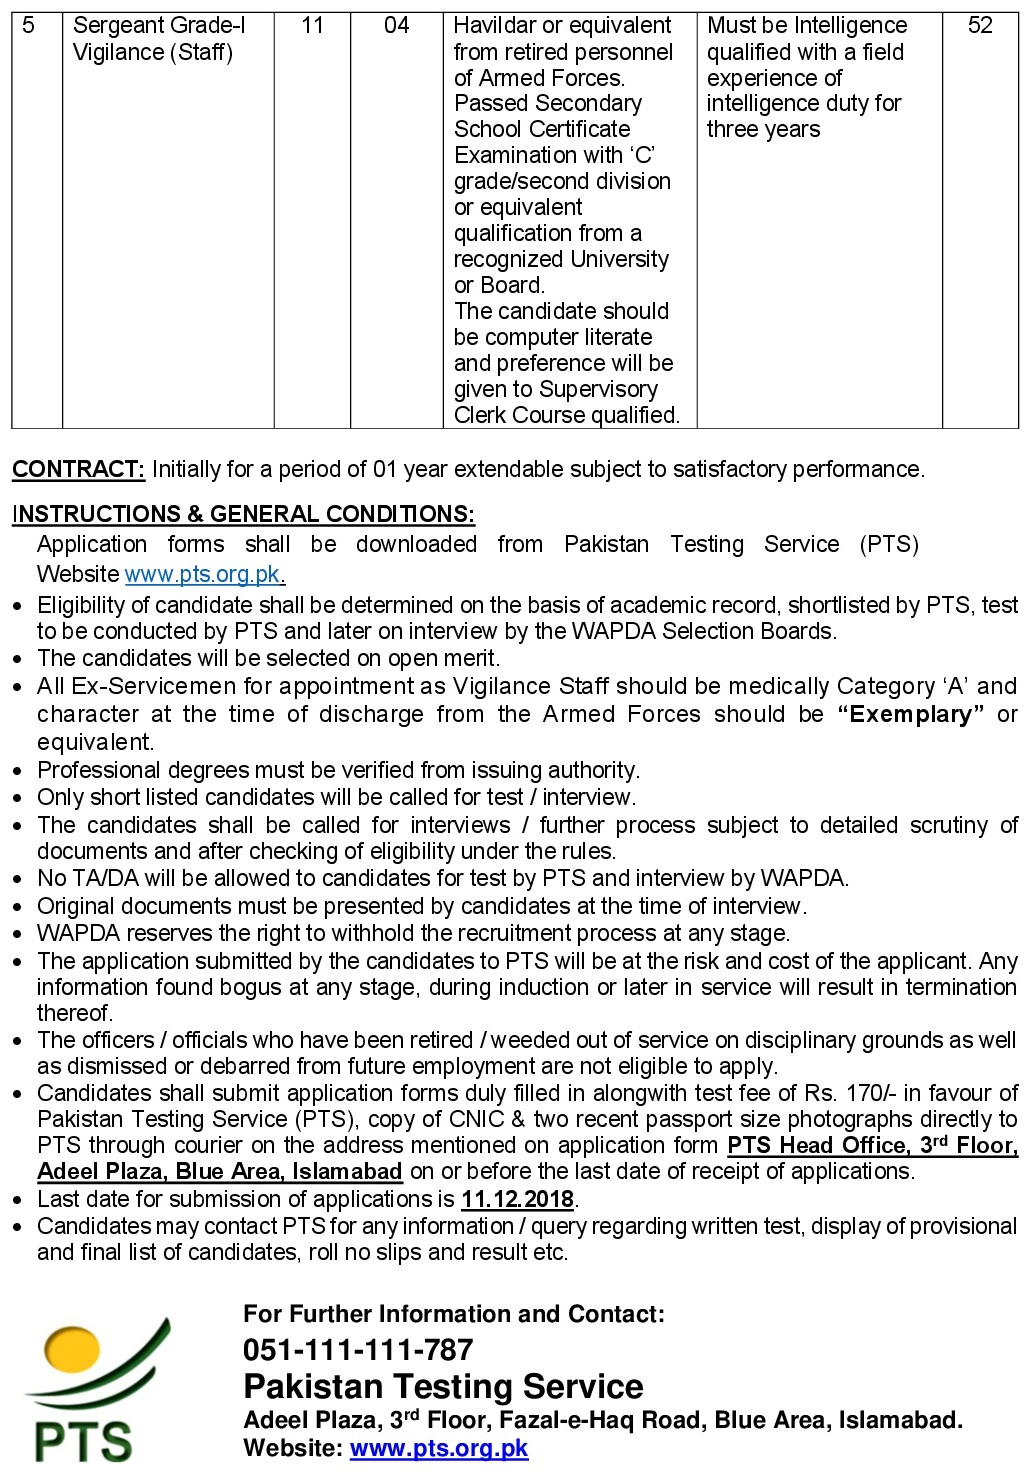 WAPDA Vigilance Directorate PTS Jobs 2020 Application Form